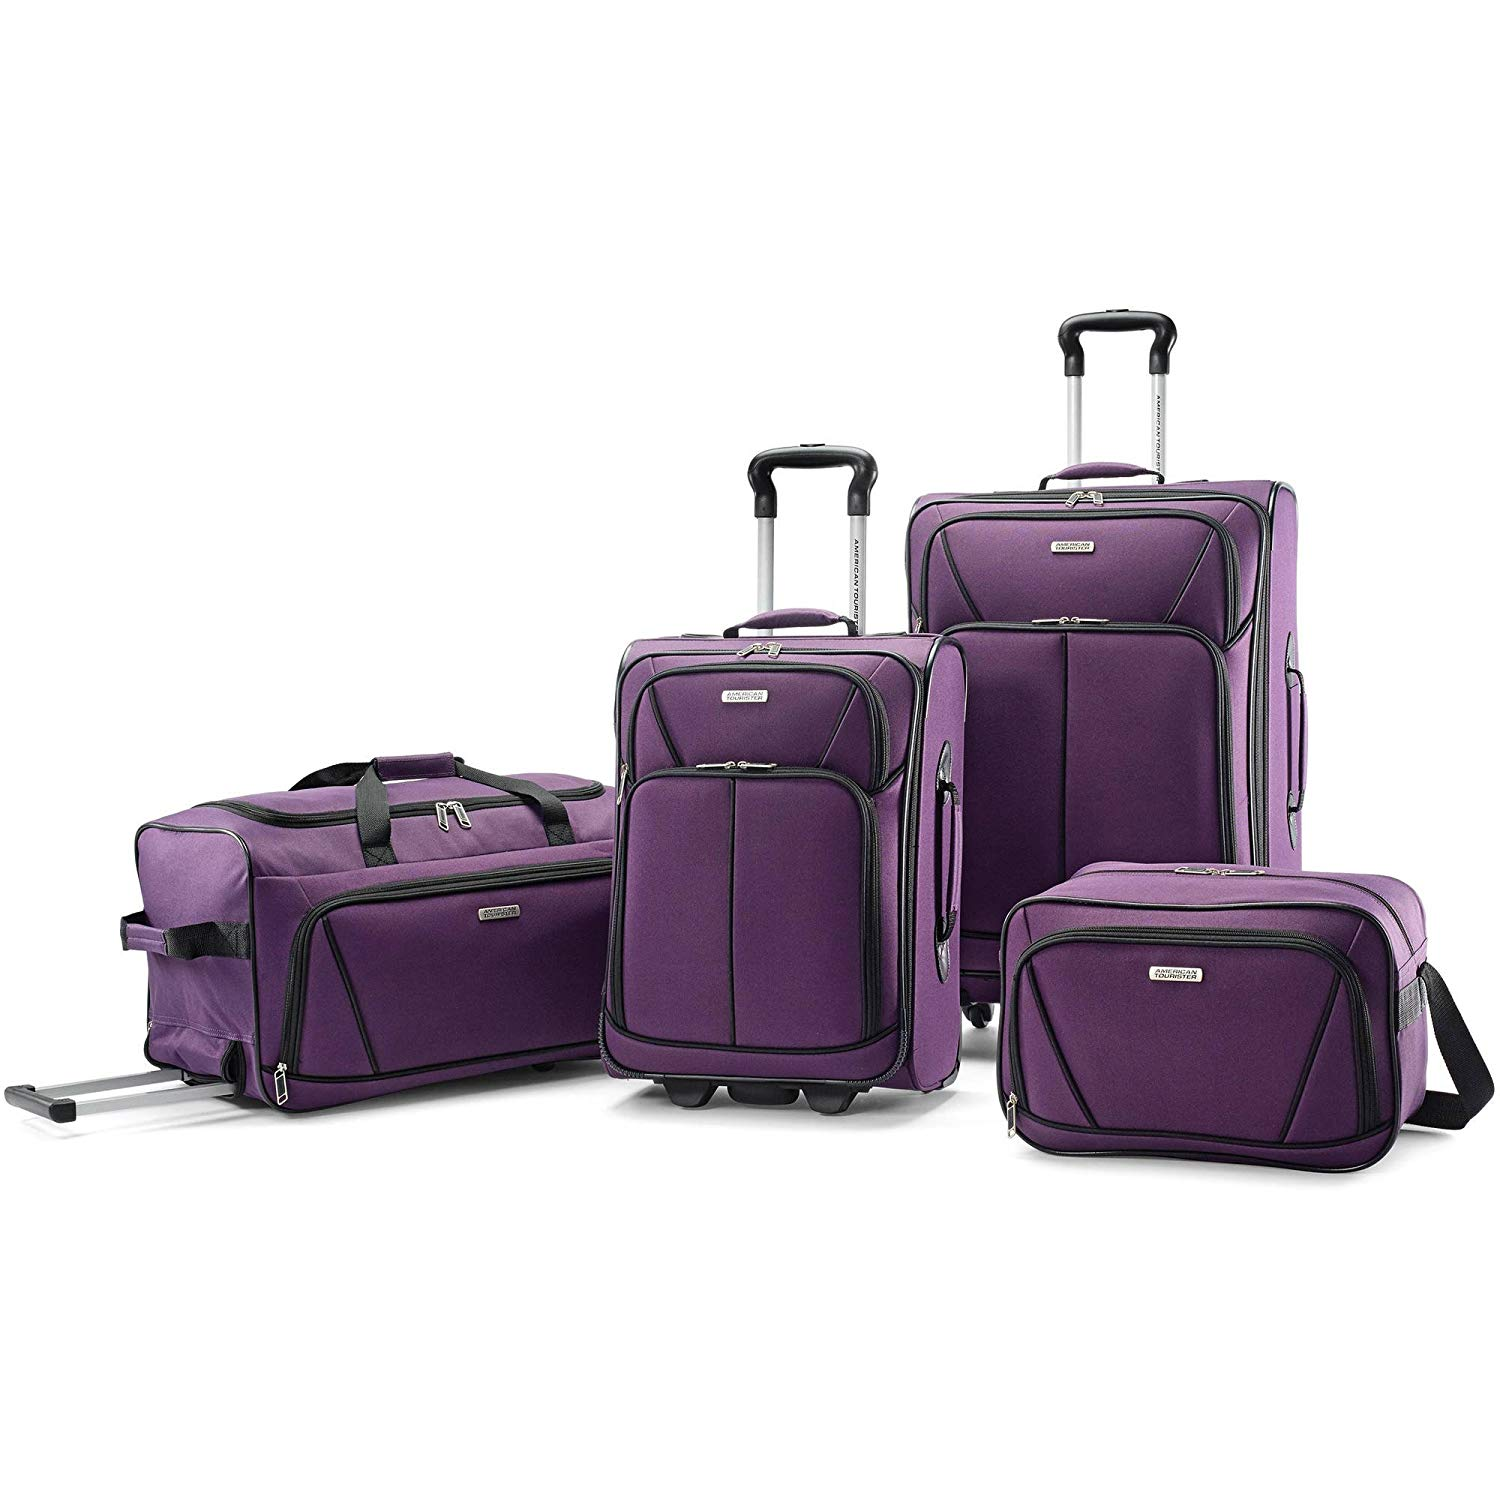 0aeea1f4691 Get Quotations · American Tourister 92442-1717 Luggage Set